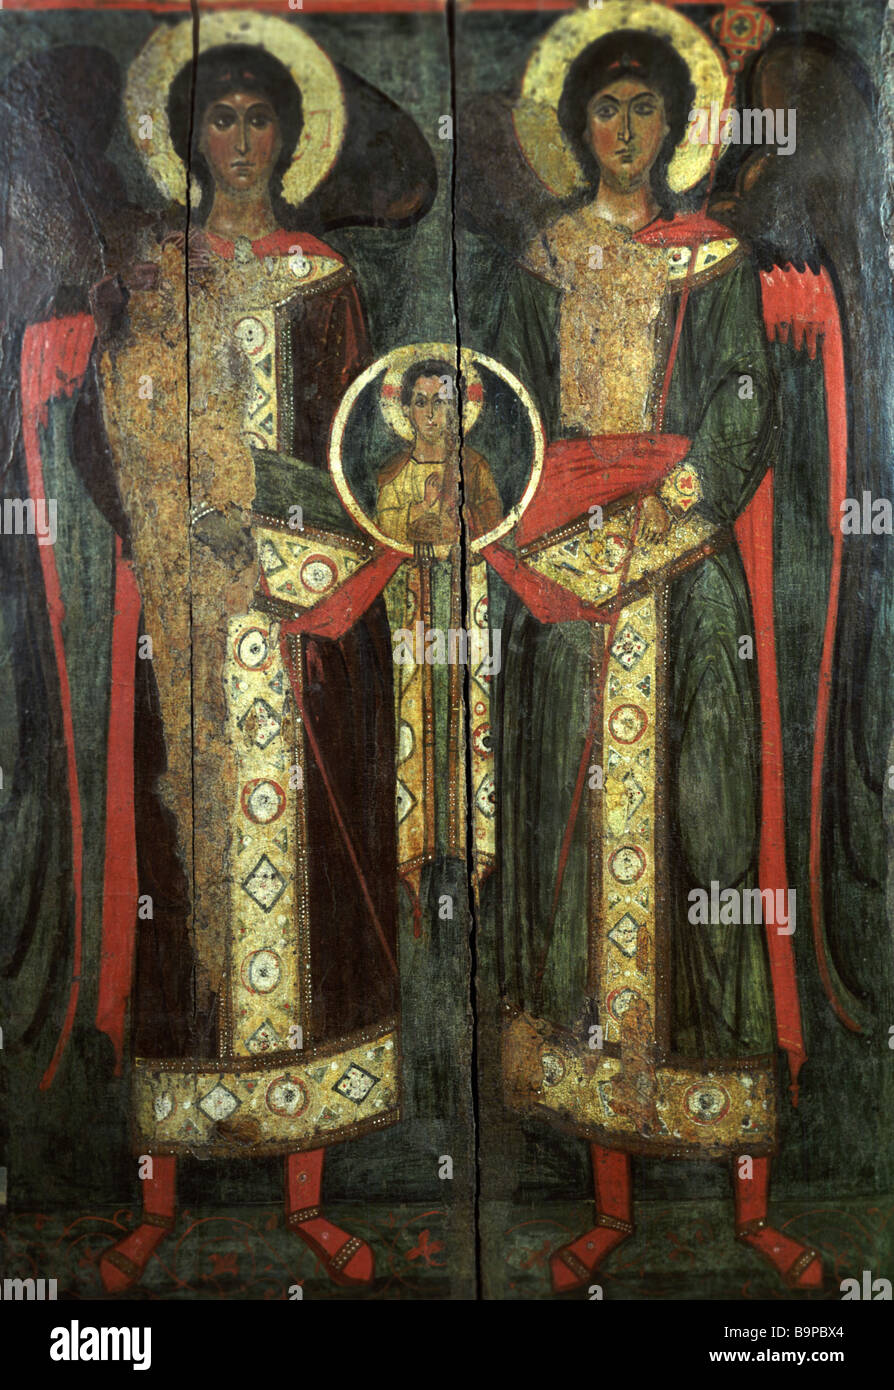 The Council of the Archangel Michael Icon 13th century Veliky Ustyug Museum - Stock Image